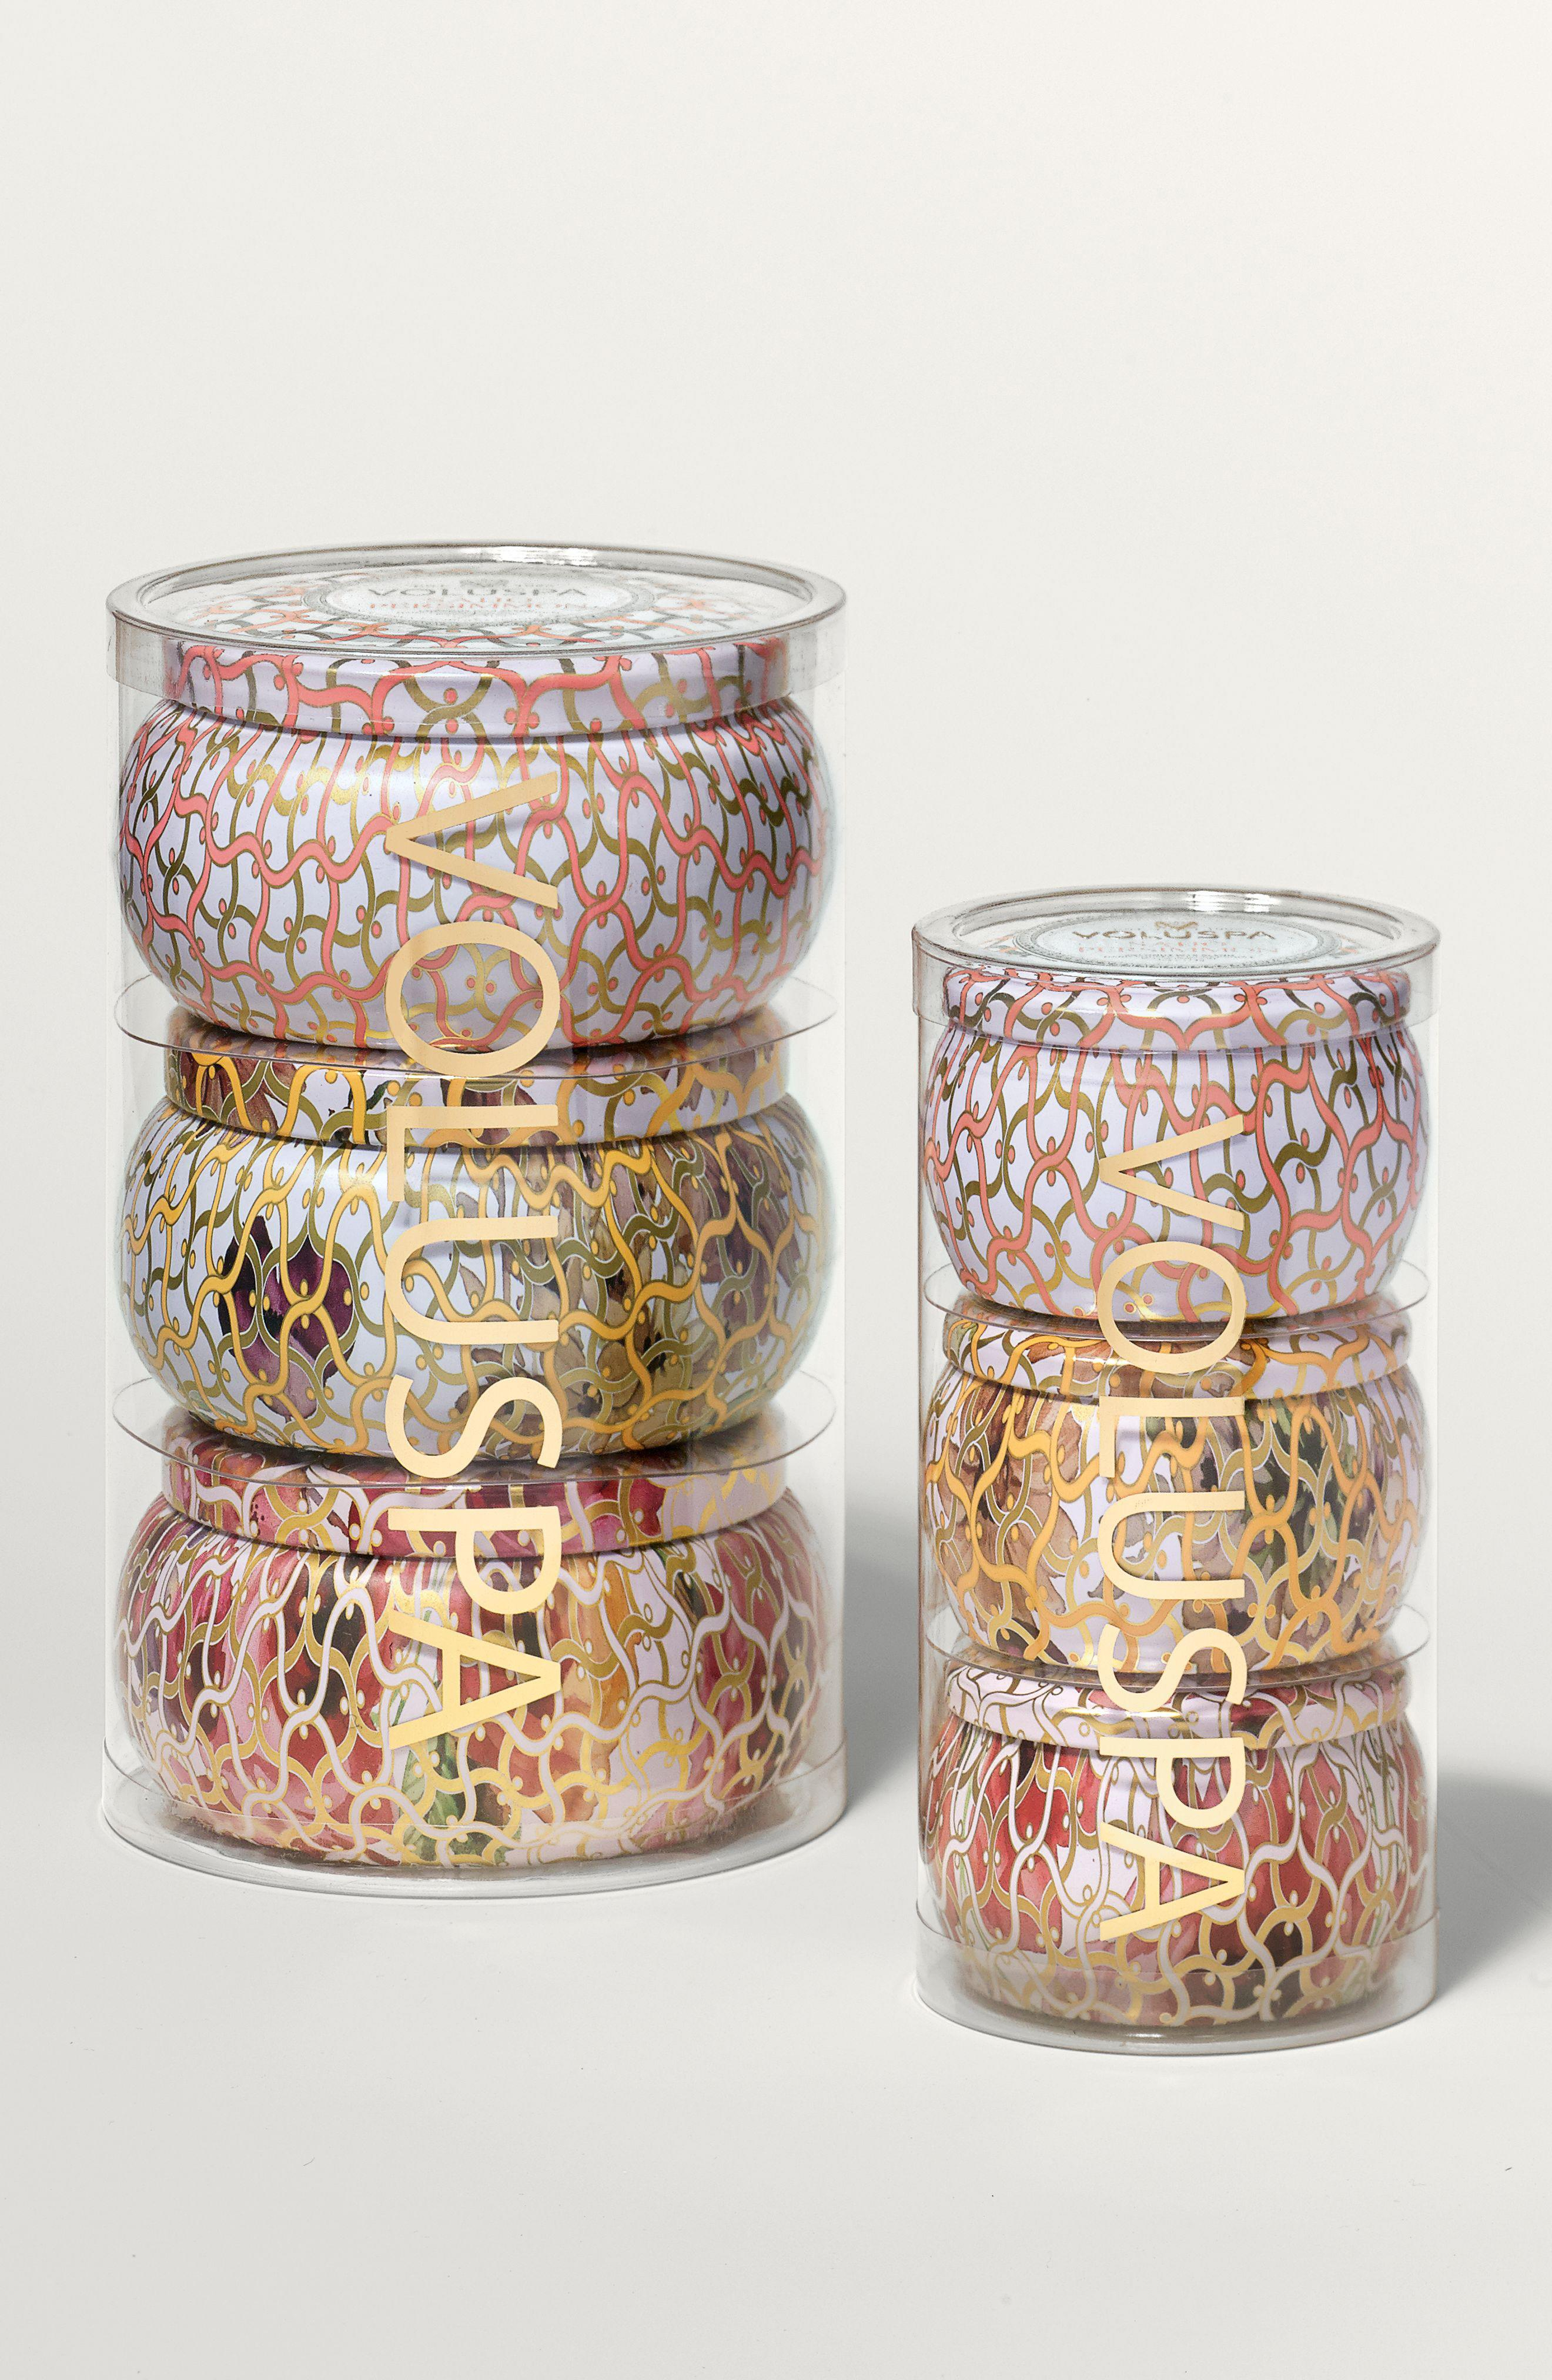 Voluspa Two Wick Tin Set - $29.50 (after sale $48). Voluspa_Mini Tin Set - $15.90 (after sale $24). (Image: Nordstrom)